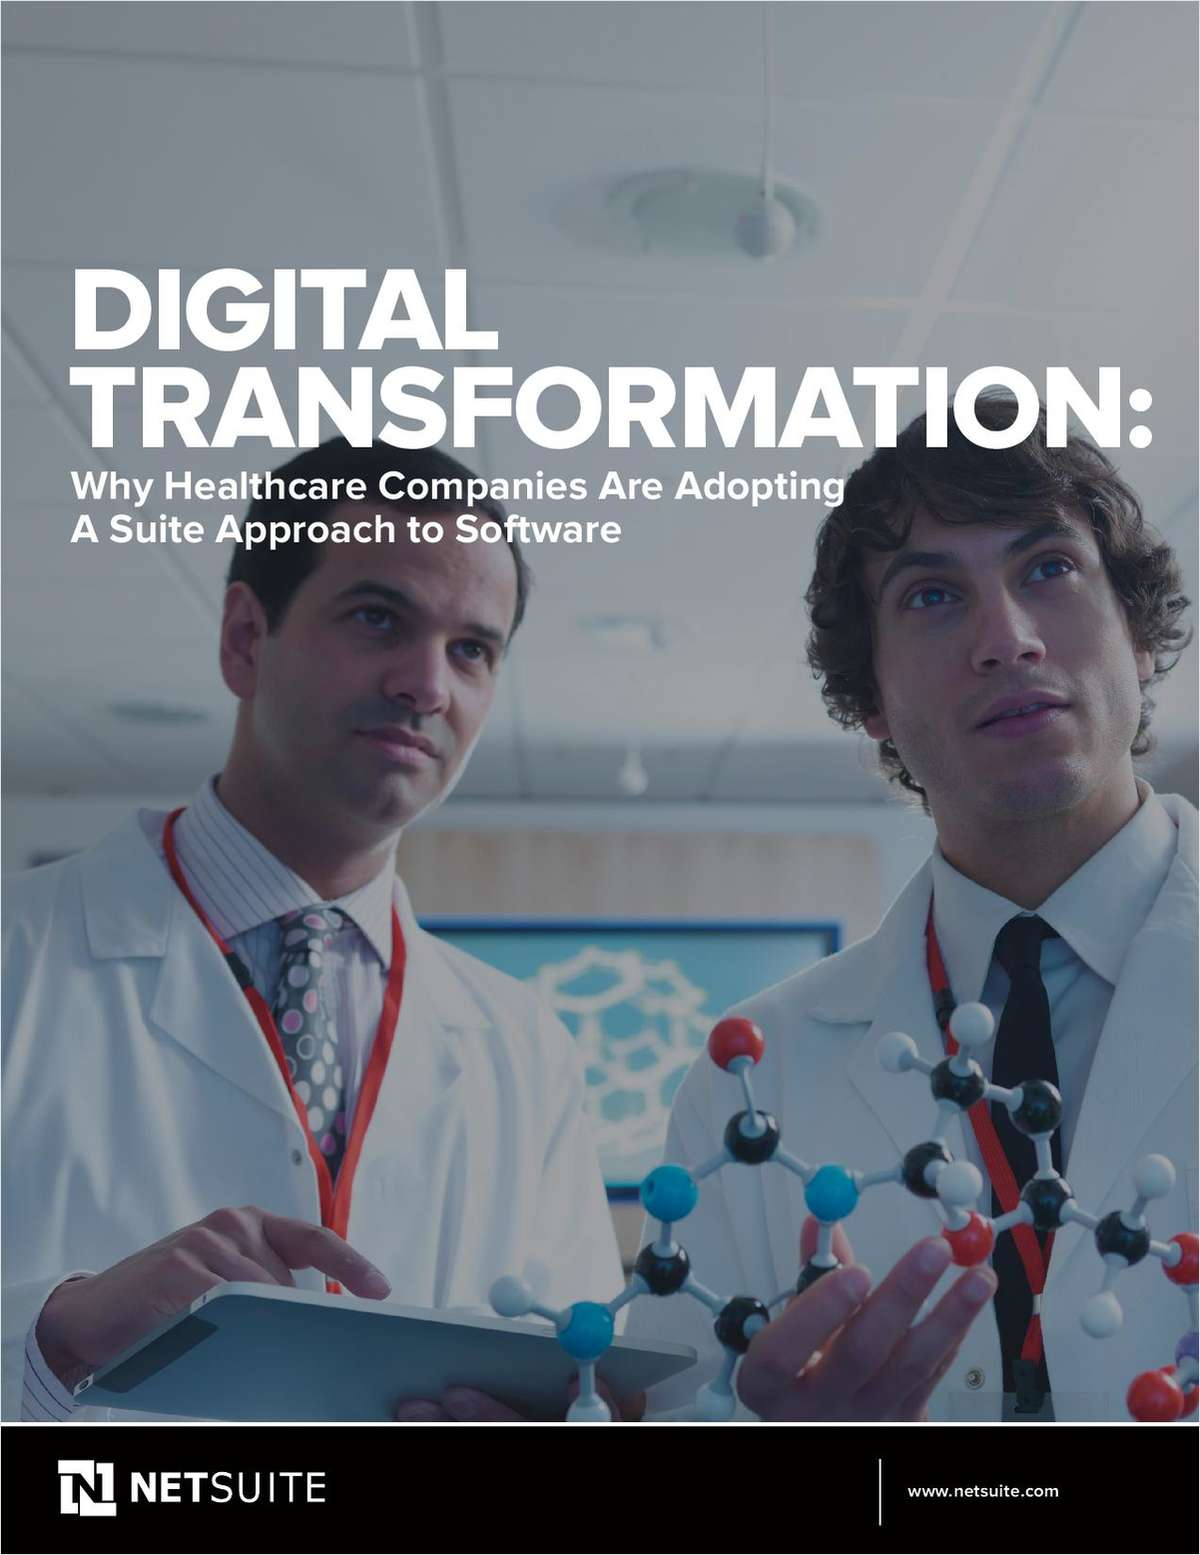 Digital Transformation: Why Health Care Companies Are Adopting a Suite Approach to Software